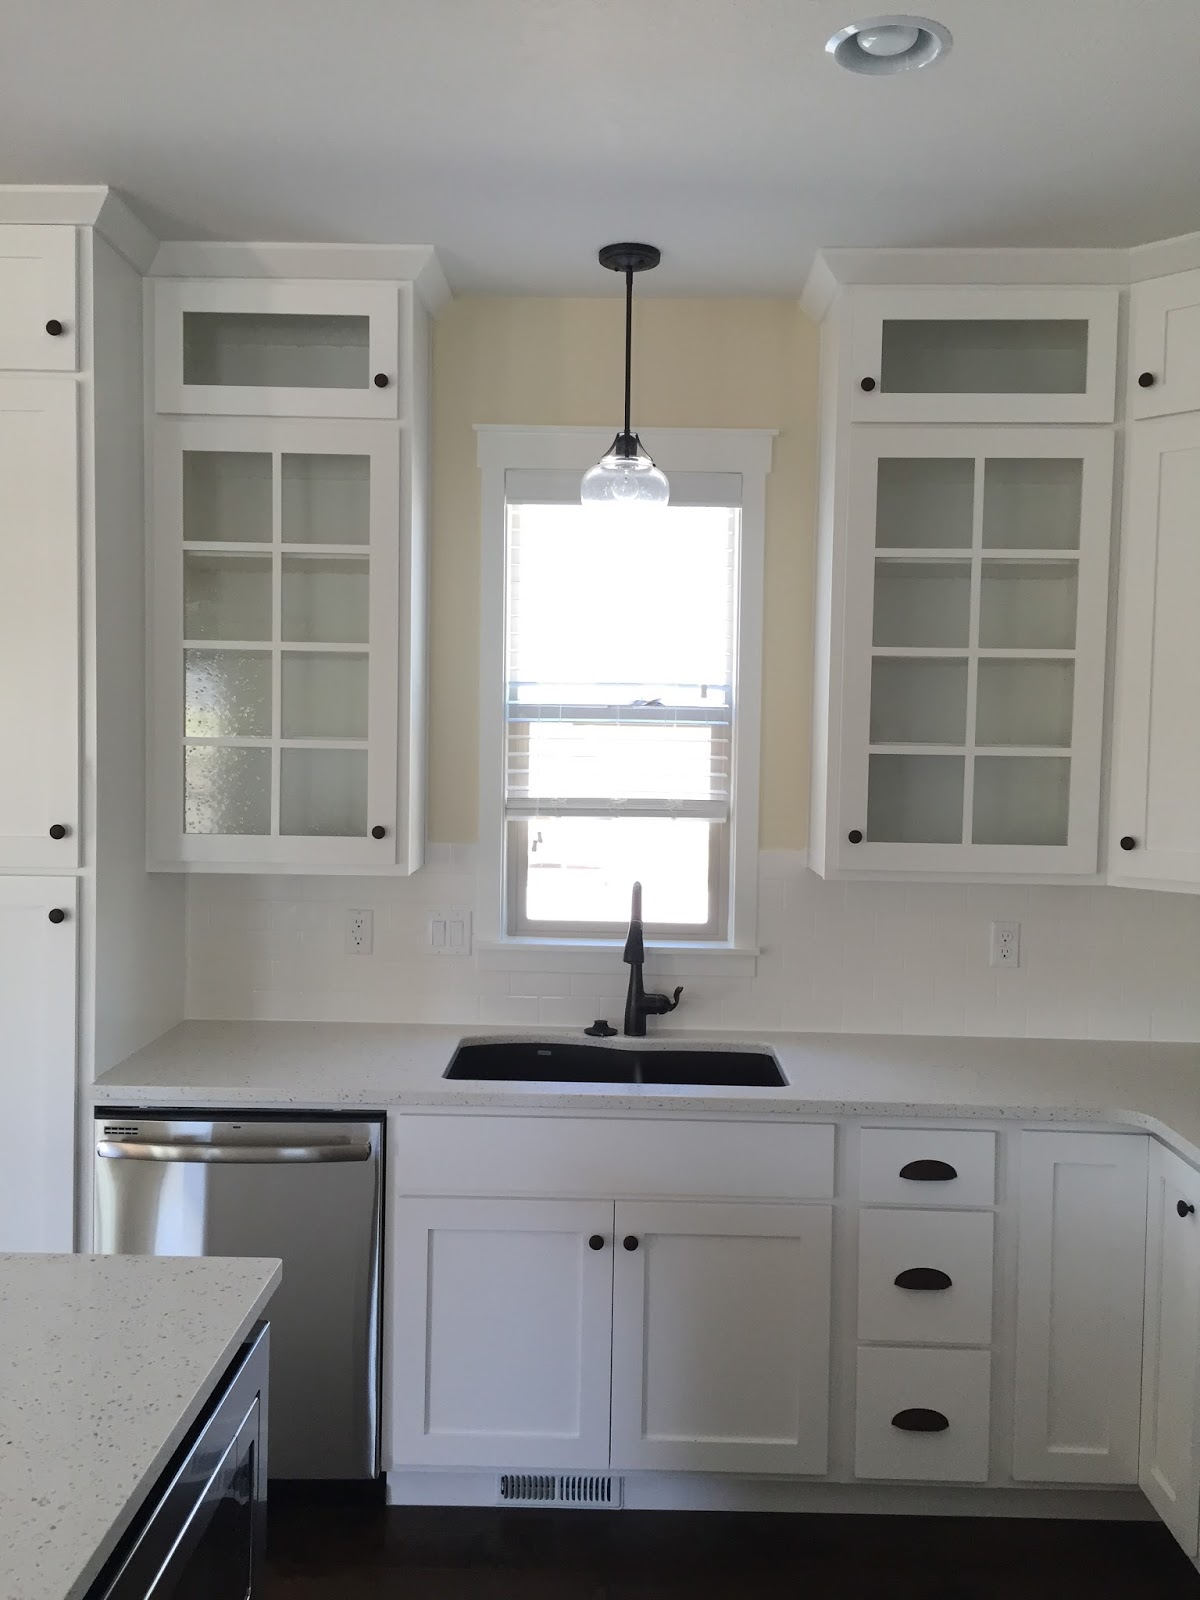 Singer kitchens cabinets to go new orleans stocked cabinets singer - Pictures Of Kitchen Cabinets That Go To The Ceiling